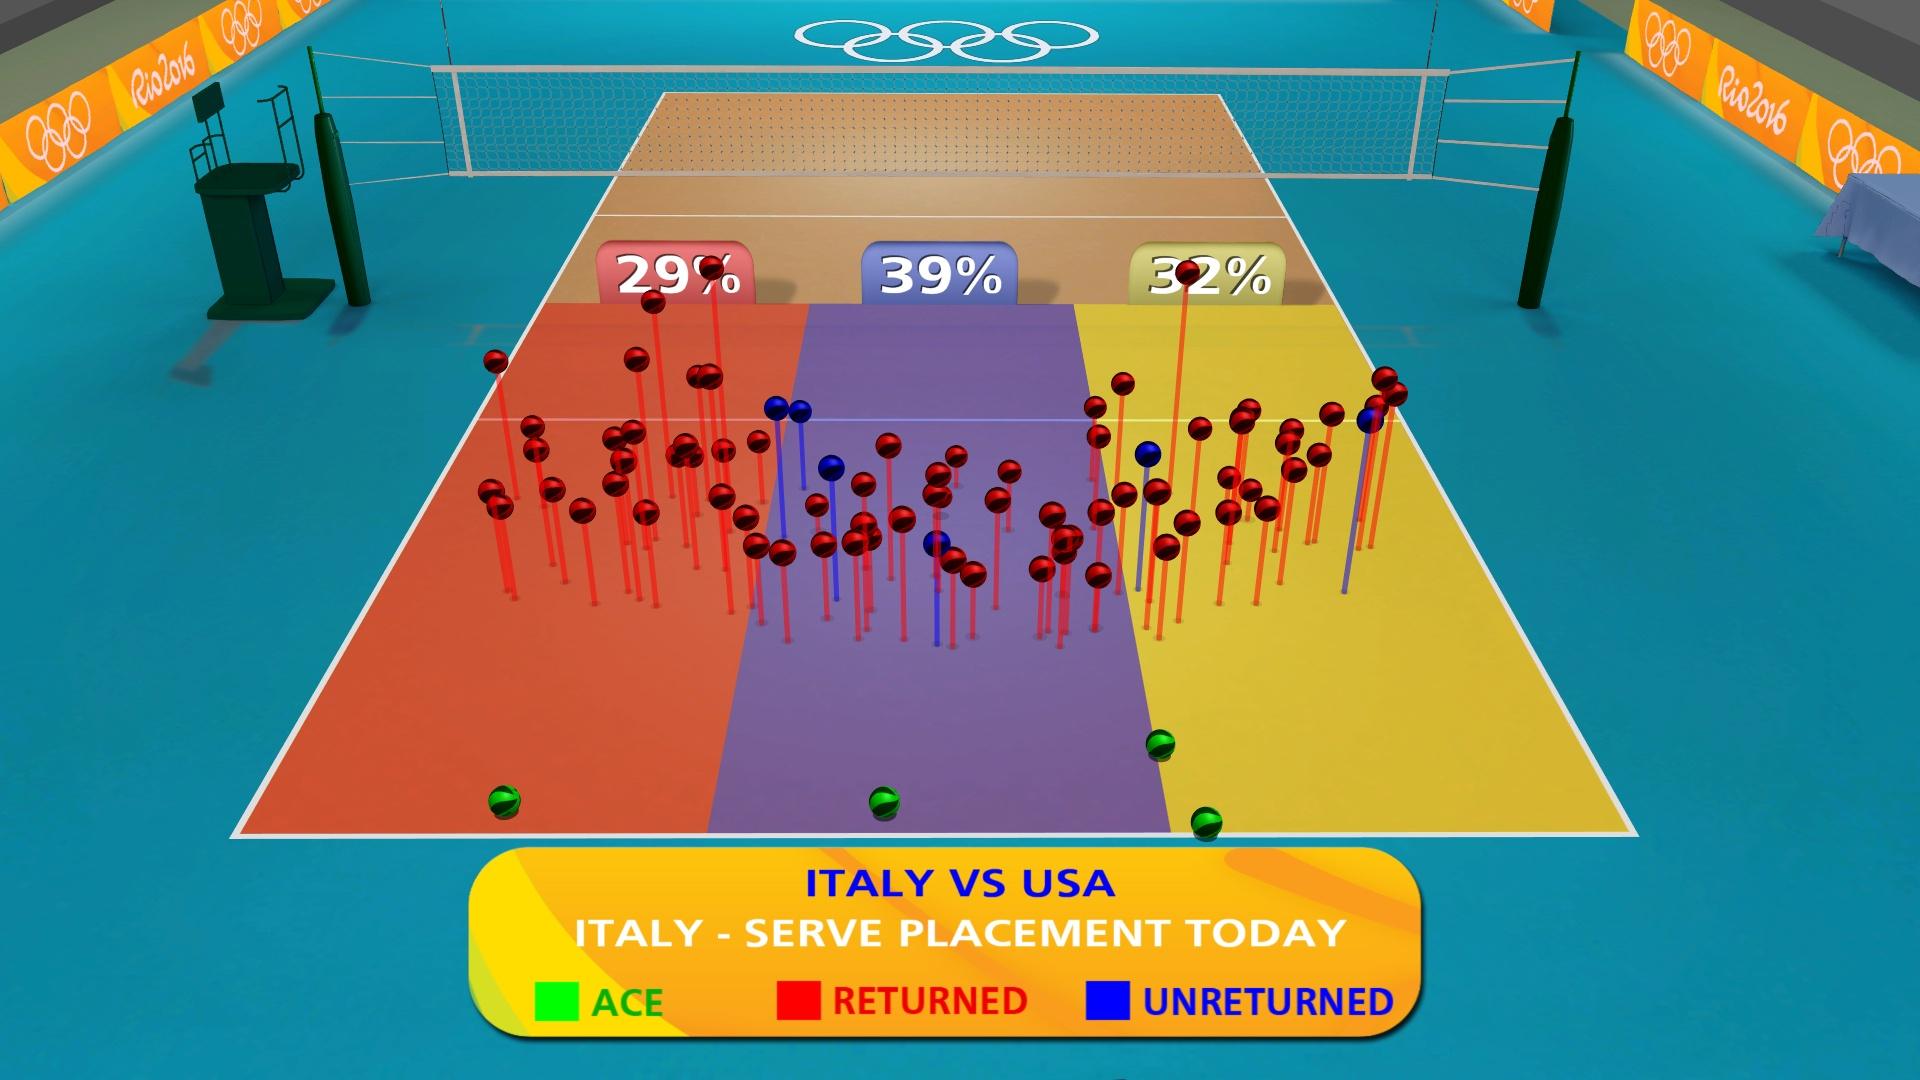 http://www.fivb.org/Vis2009/Images/GetImage.asmx?No=201653344&maxSize=960